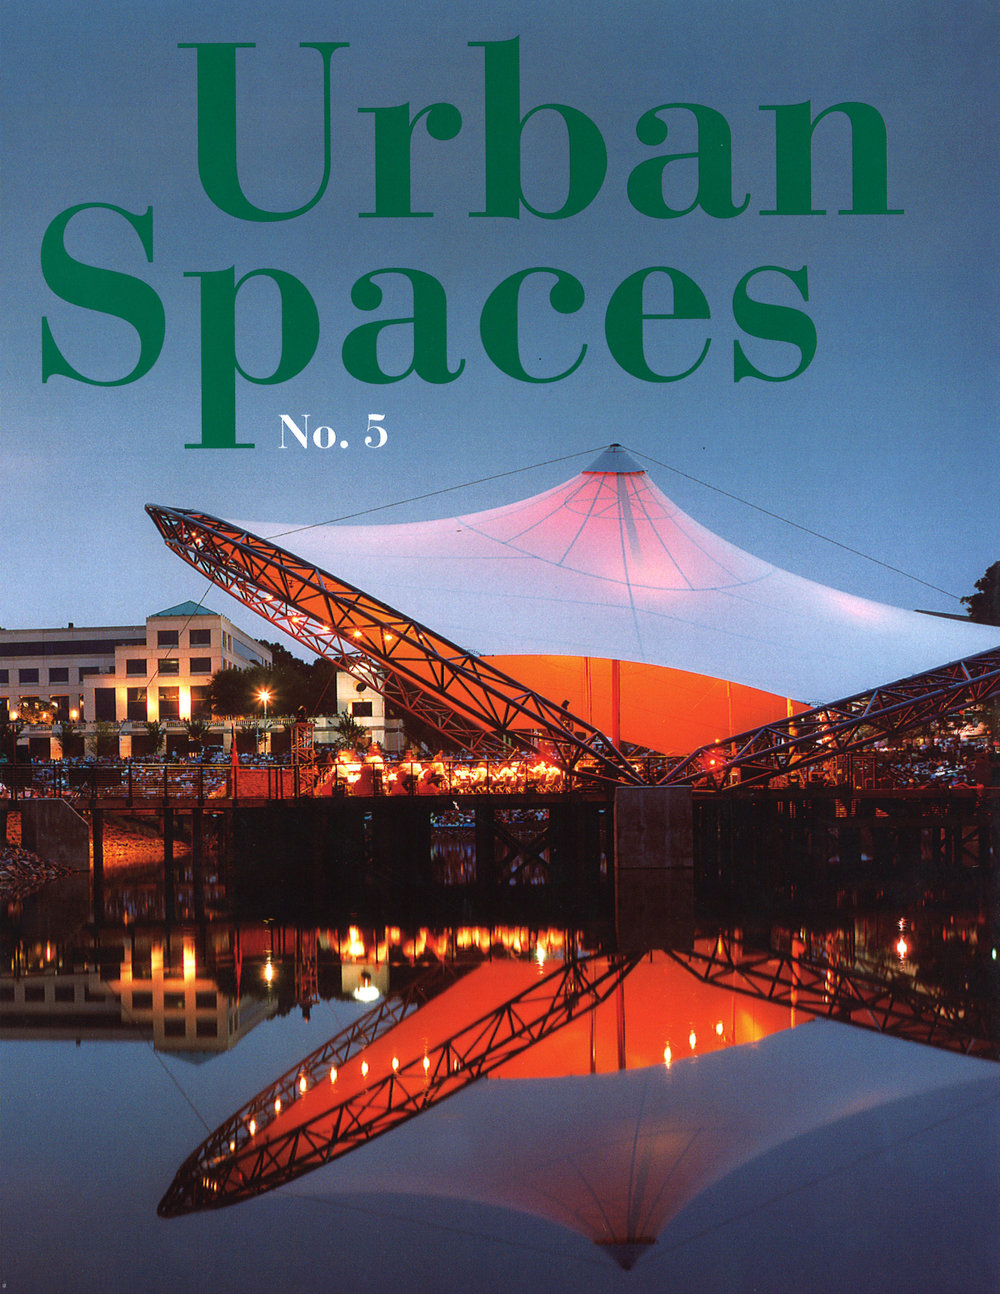 urban-spaces-no.5